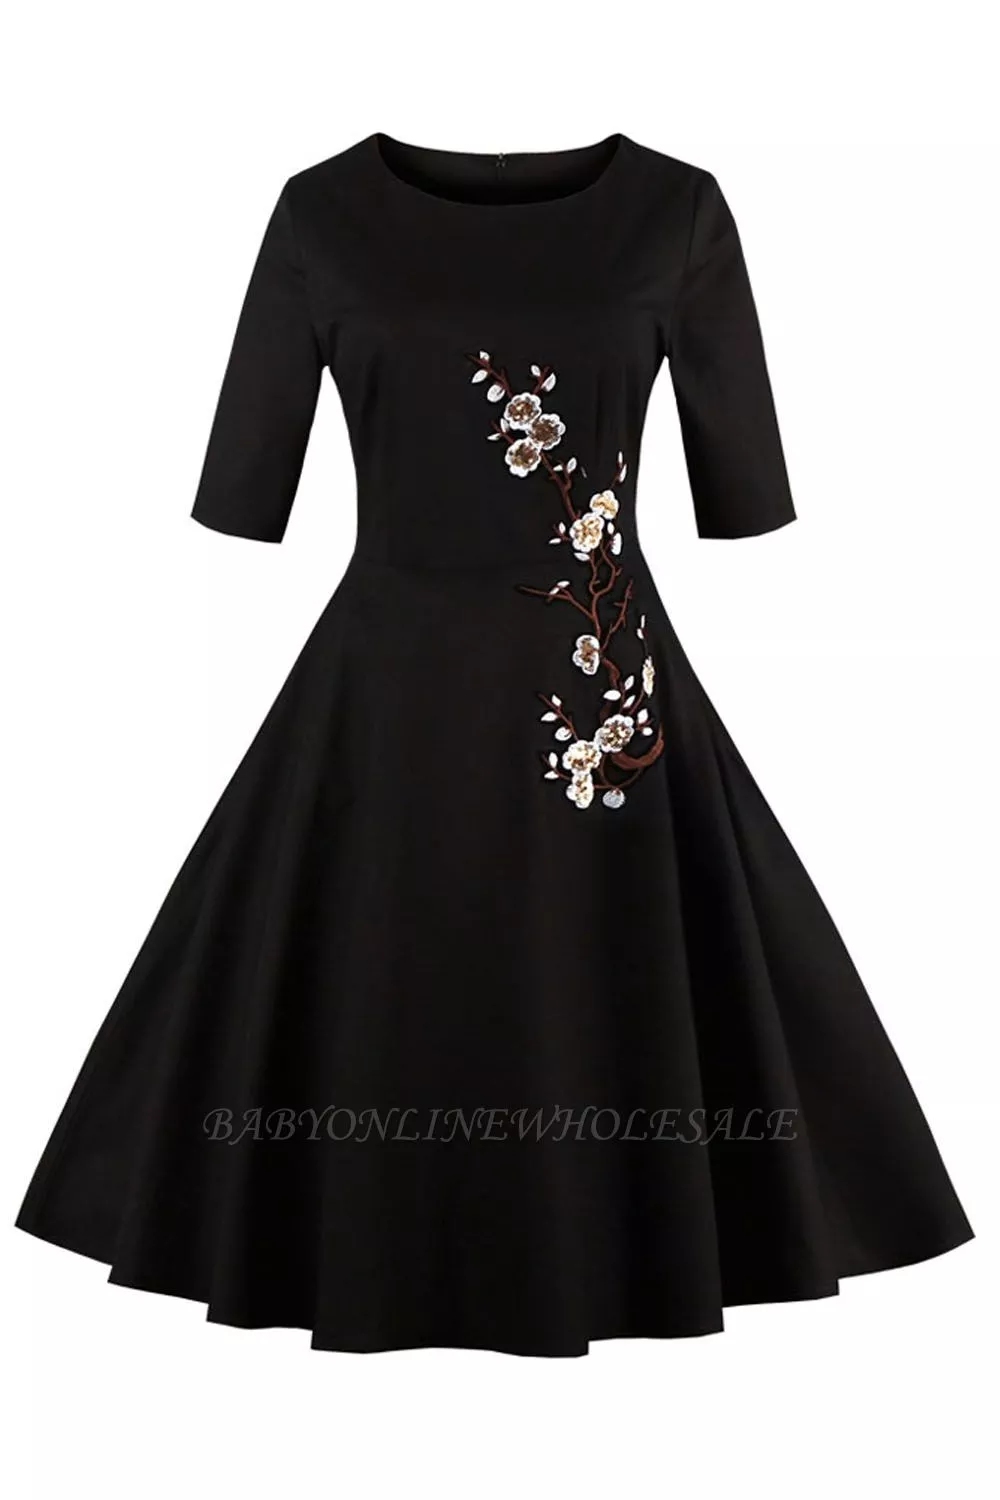 1 2 Sleeve Black Dress With Embroidered Flowers Clearance Sale And Free Shipping Black Dress With Sleeves Dresses Black Dress [ 1500 x 1000 Pixel ]